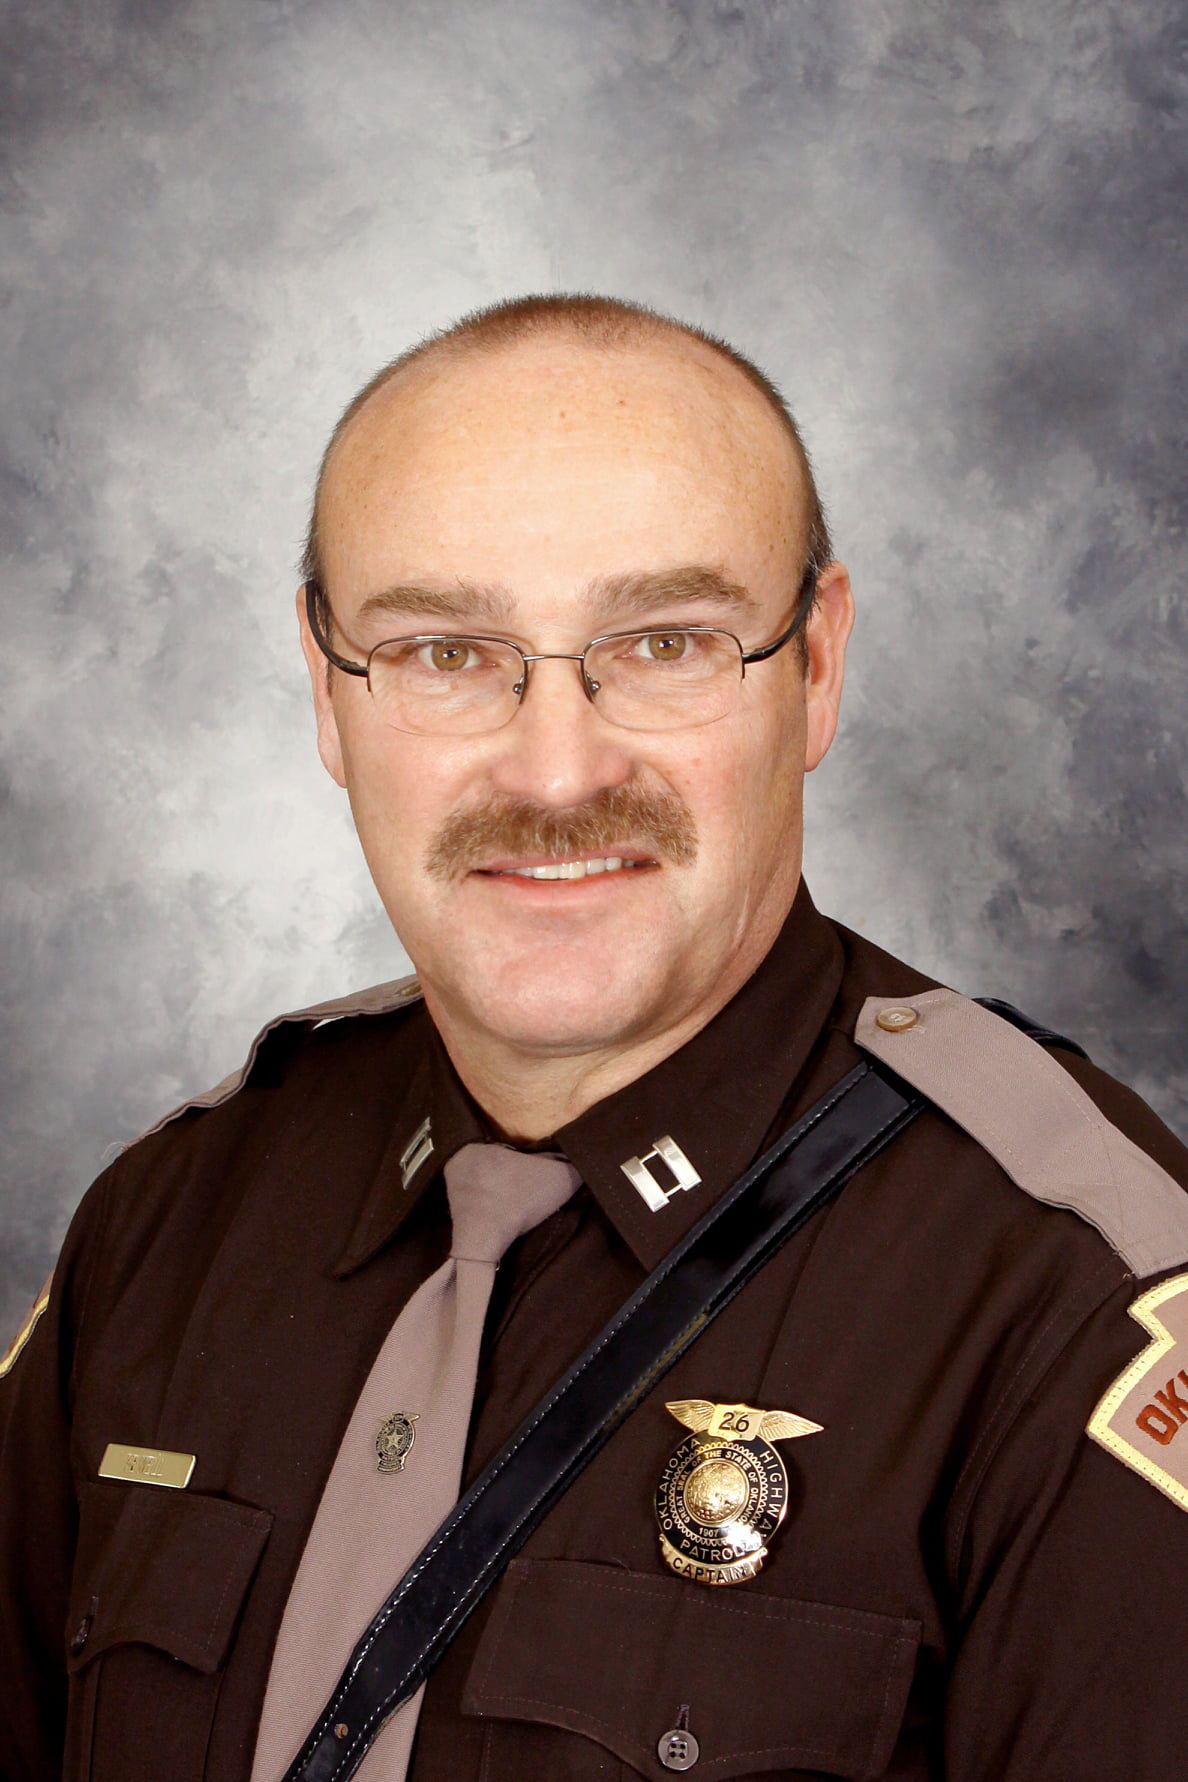 Oklahoma Highway Patrol Captain Jeff Sewell pictured here. OHP announced Saturday, September 26 that Sewell had died due to COVID-19.